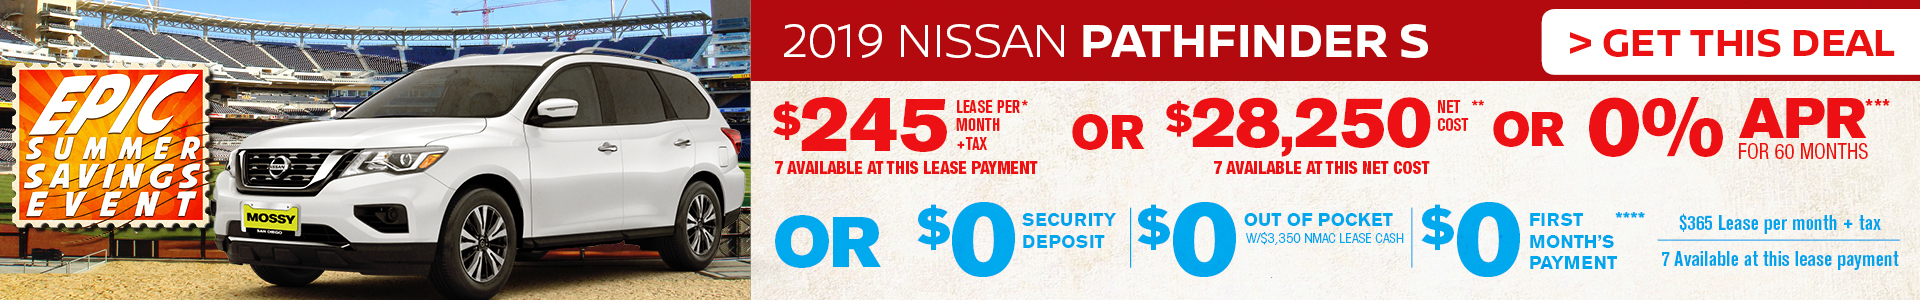 Mossy Nissan - Nissan Pathfinder $245 Lease